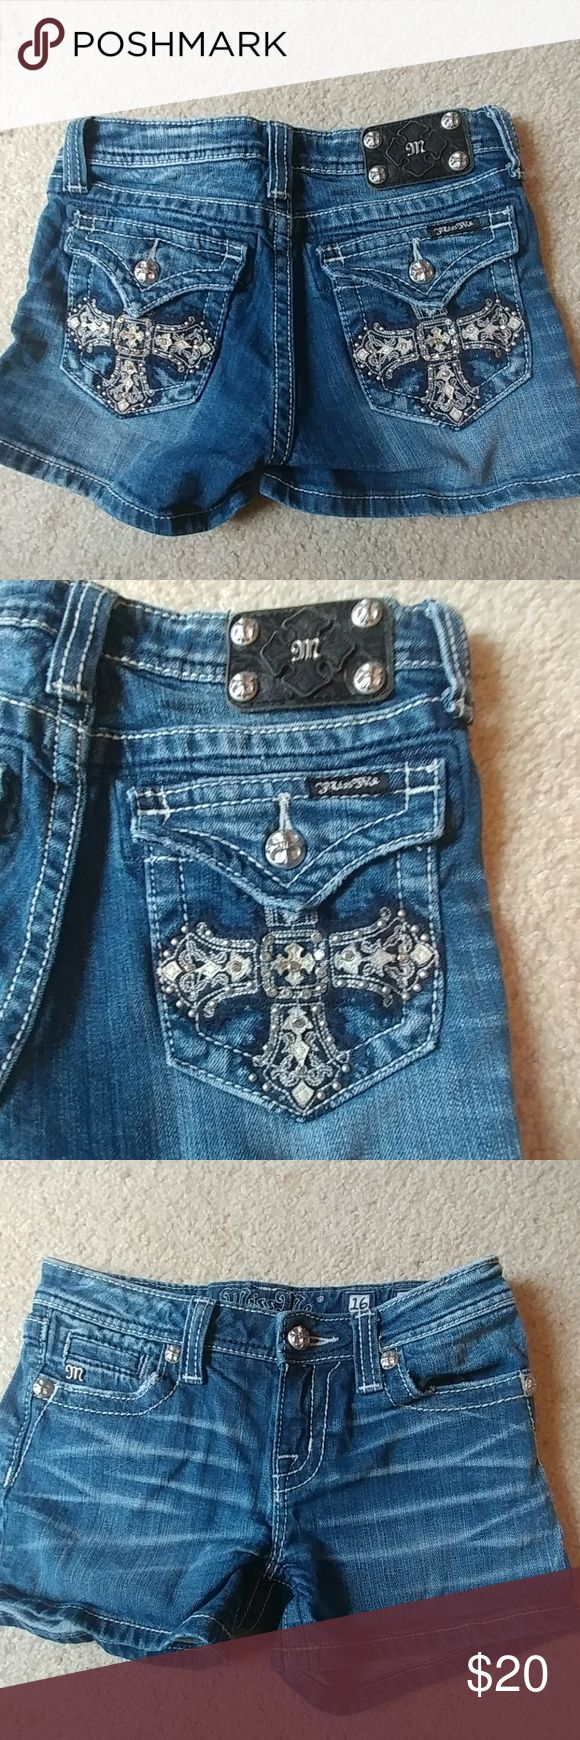 Girls Miss Me Jean Shorts size 16 Miss Me Jean Shorts size 16. Excellent condition. Miss Me Bottoms Shorts